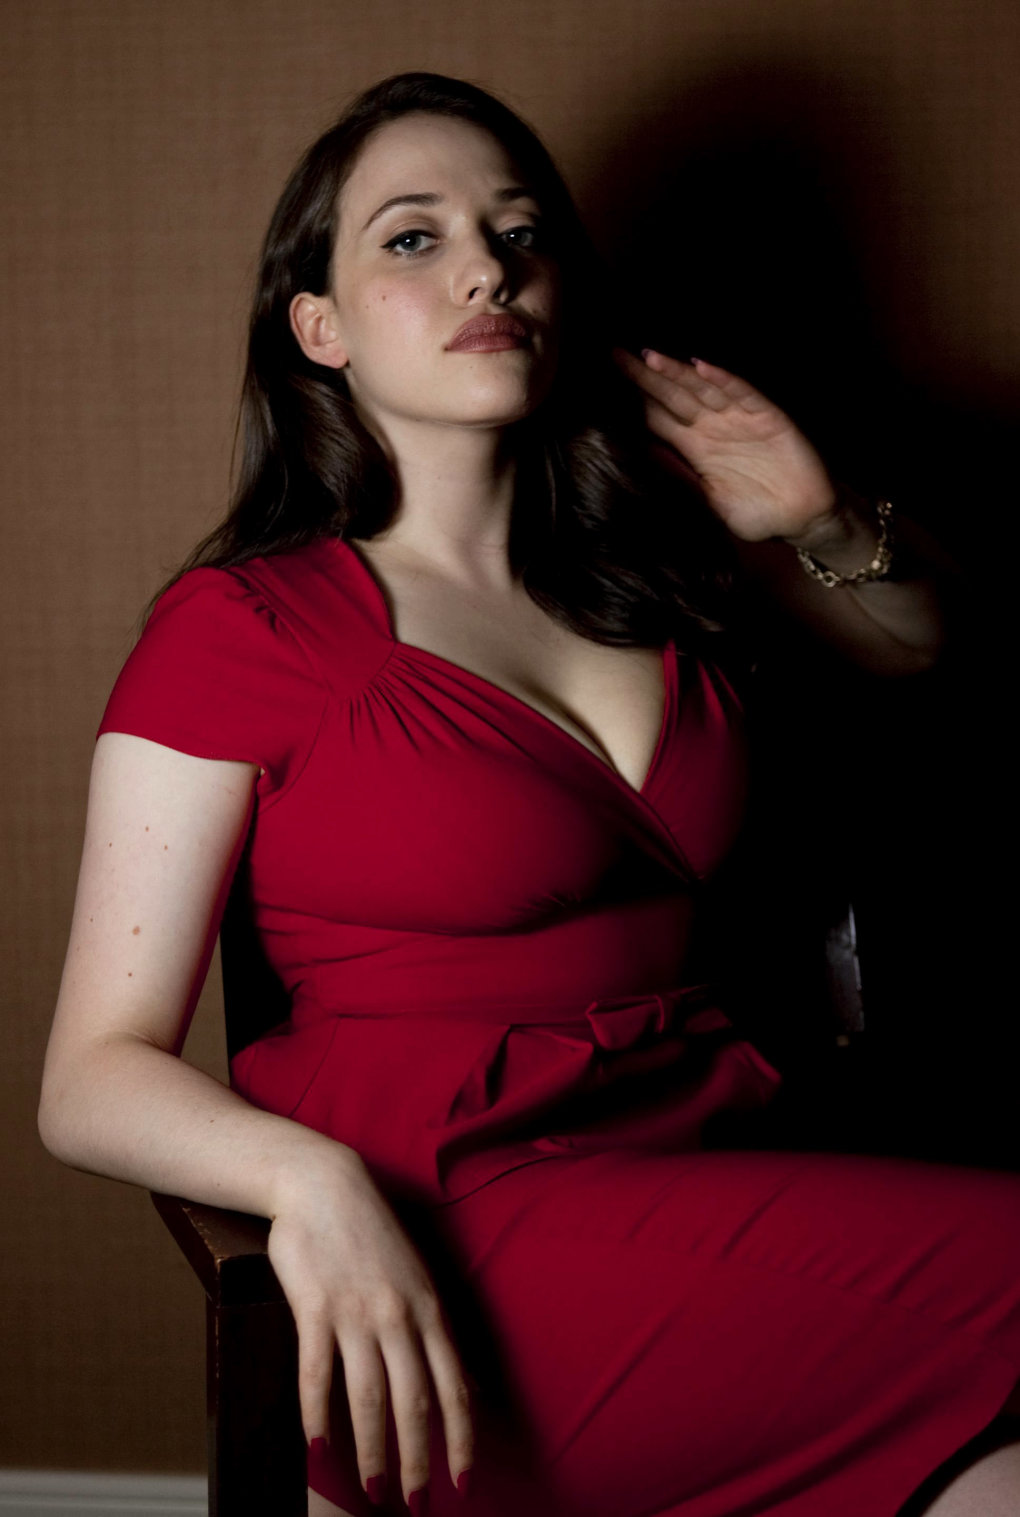 2019 Kat Dennings naked (18 photo), Ass, Leaked, Selfie, panties 2015